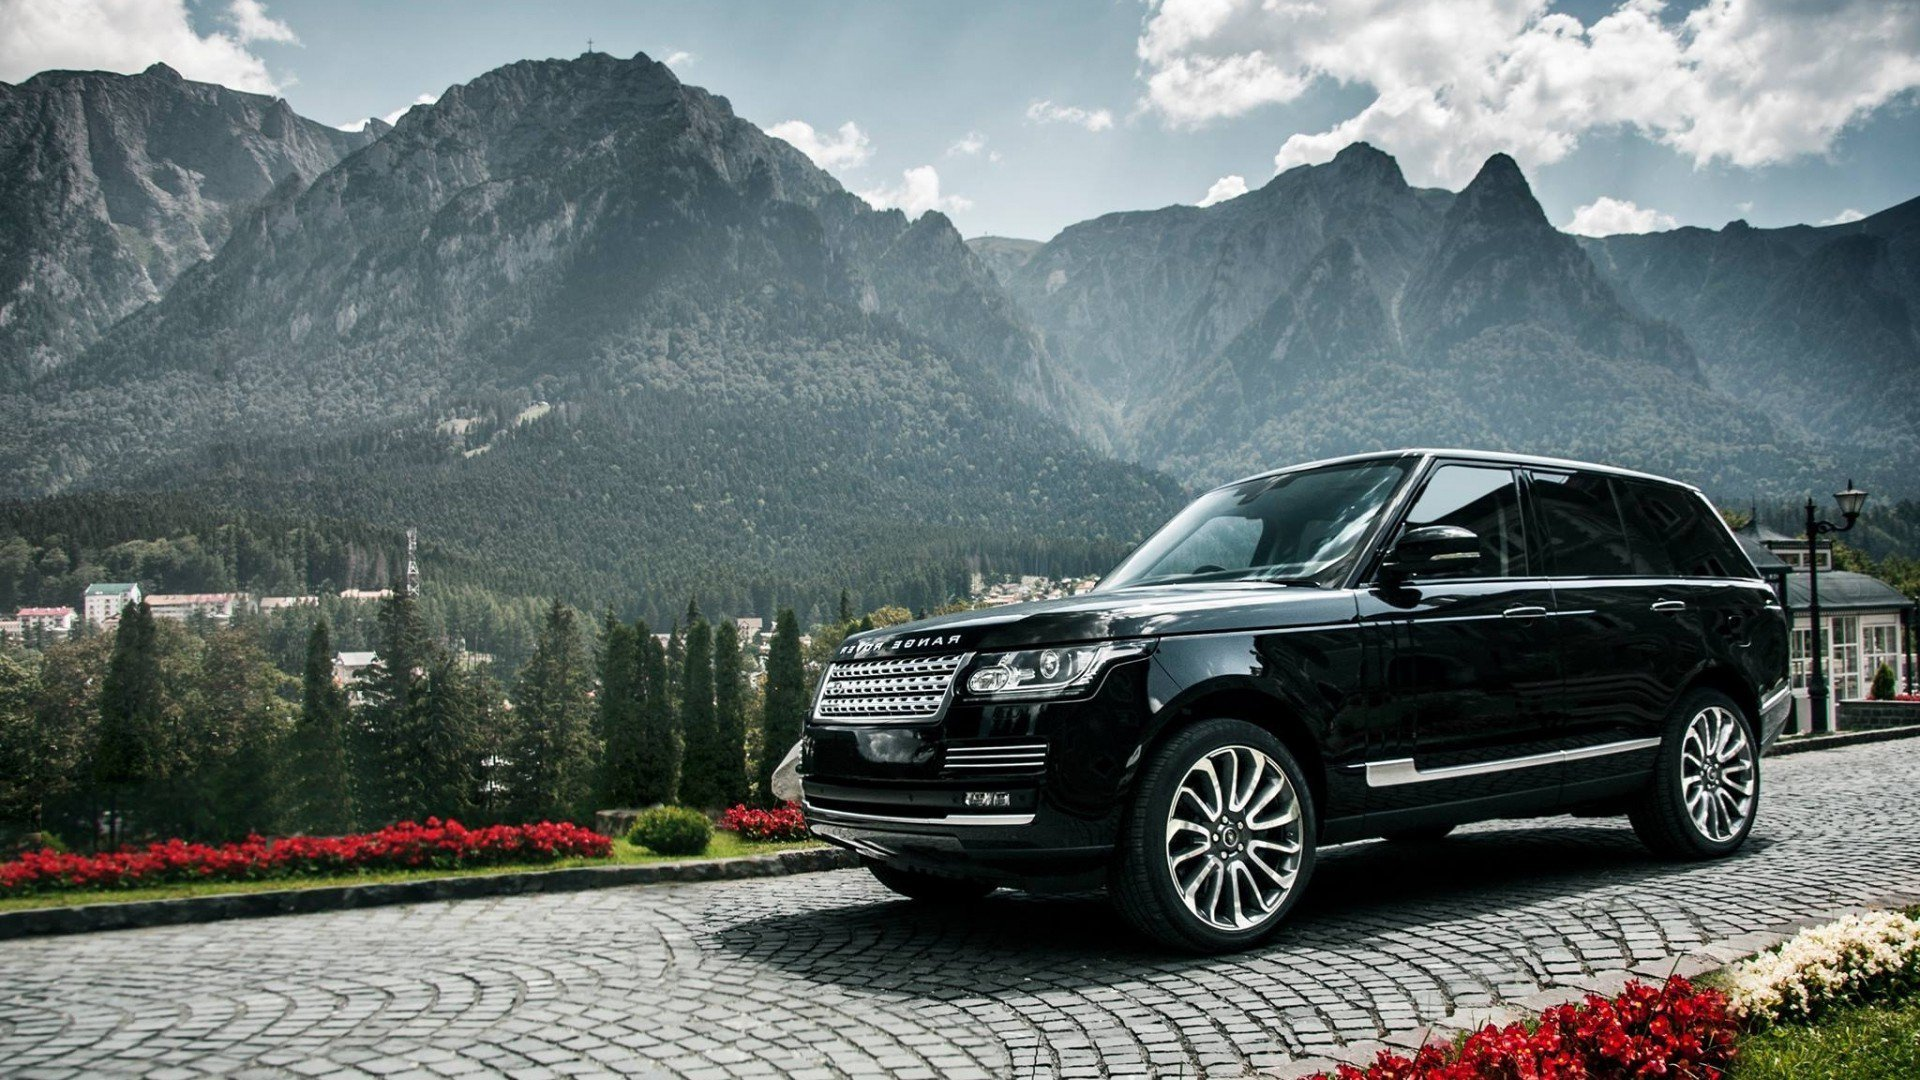 New Range Rover Black Hd Cars 4K Wallpapers Images On This Month